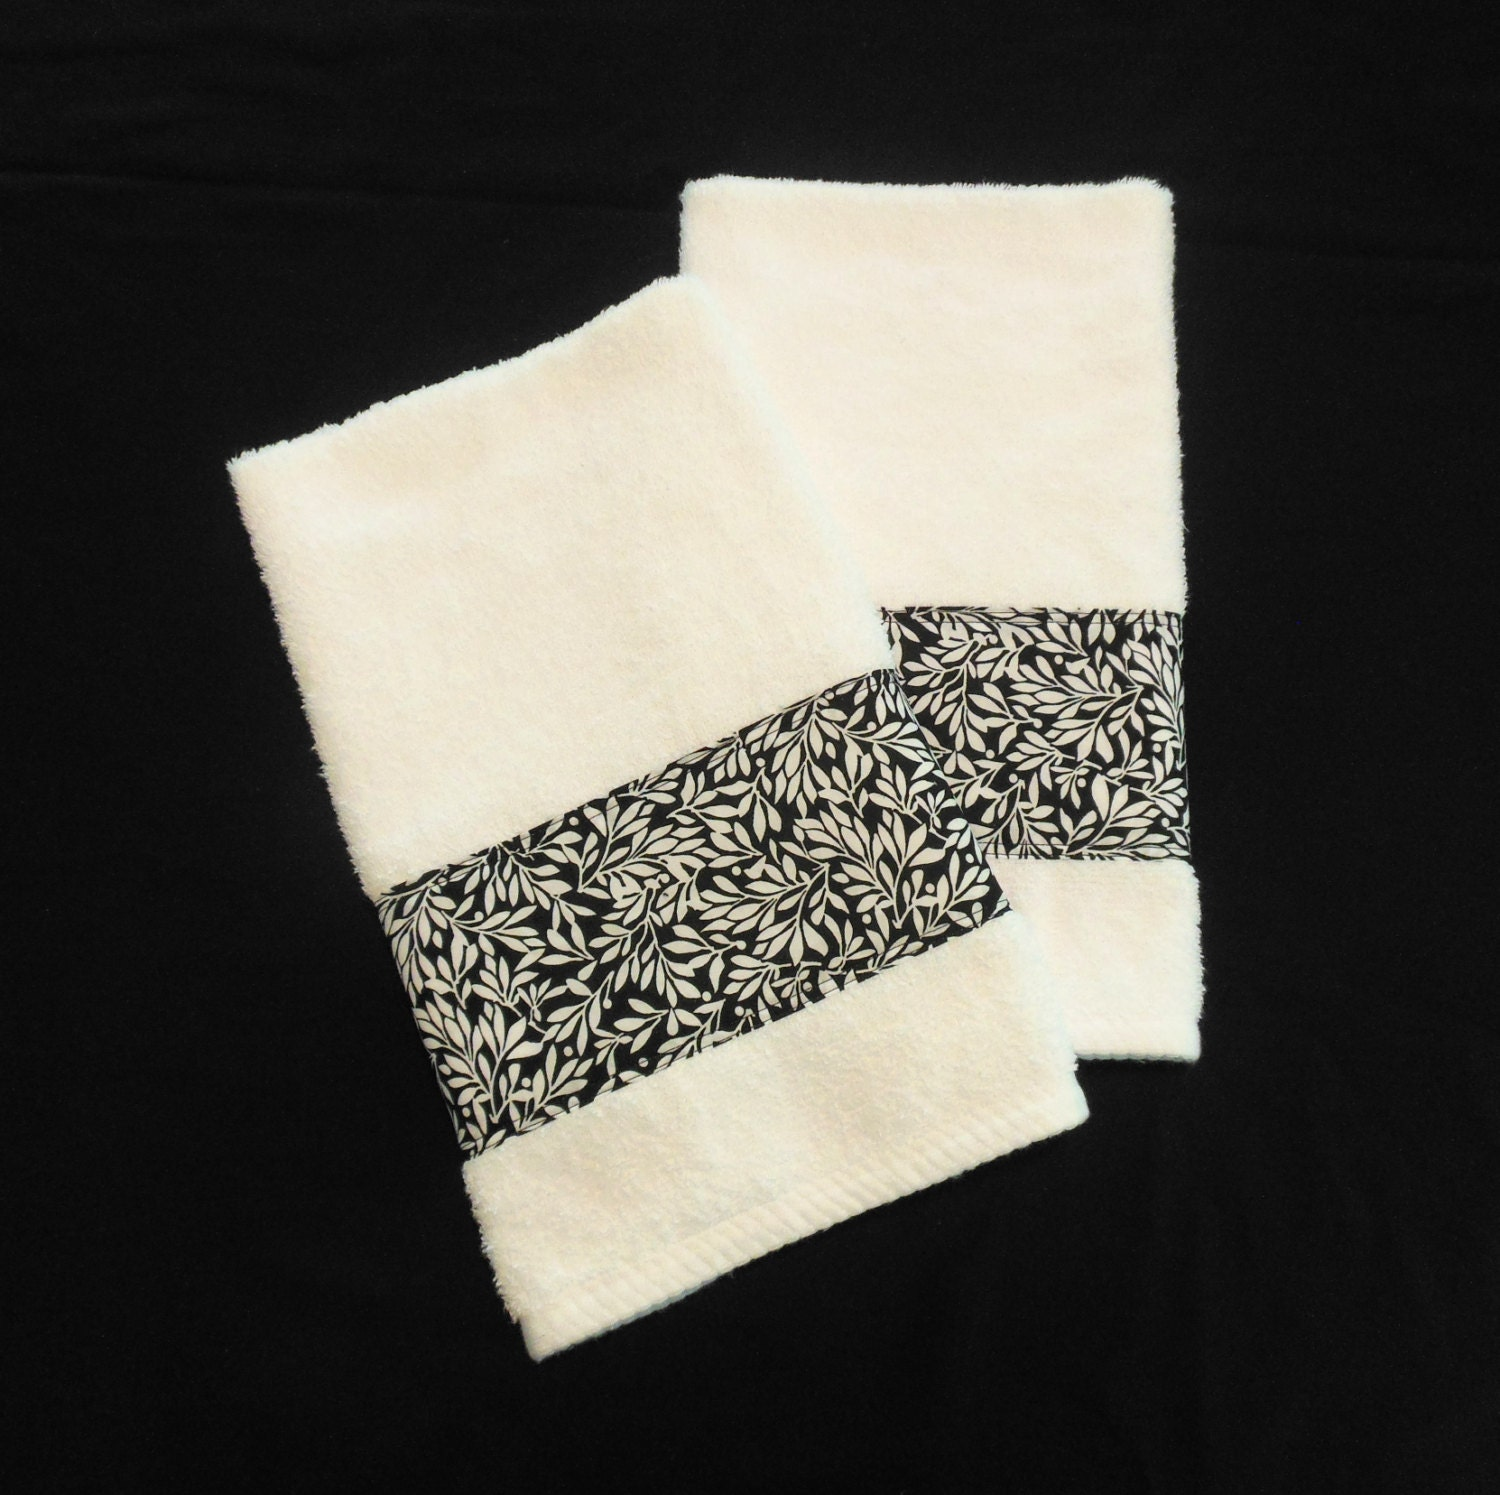 Bath Towel Sets Black And White: White Black Hand Towels Decorative Hand Towels Bathroom